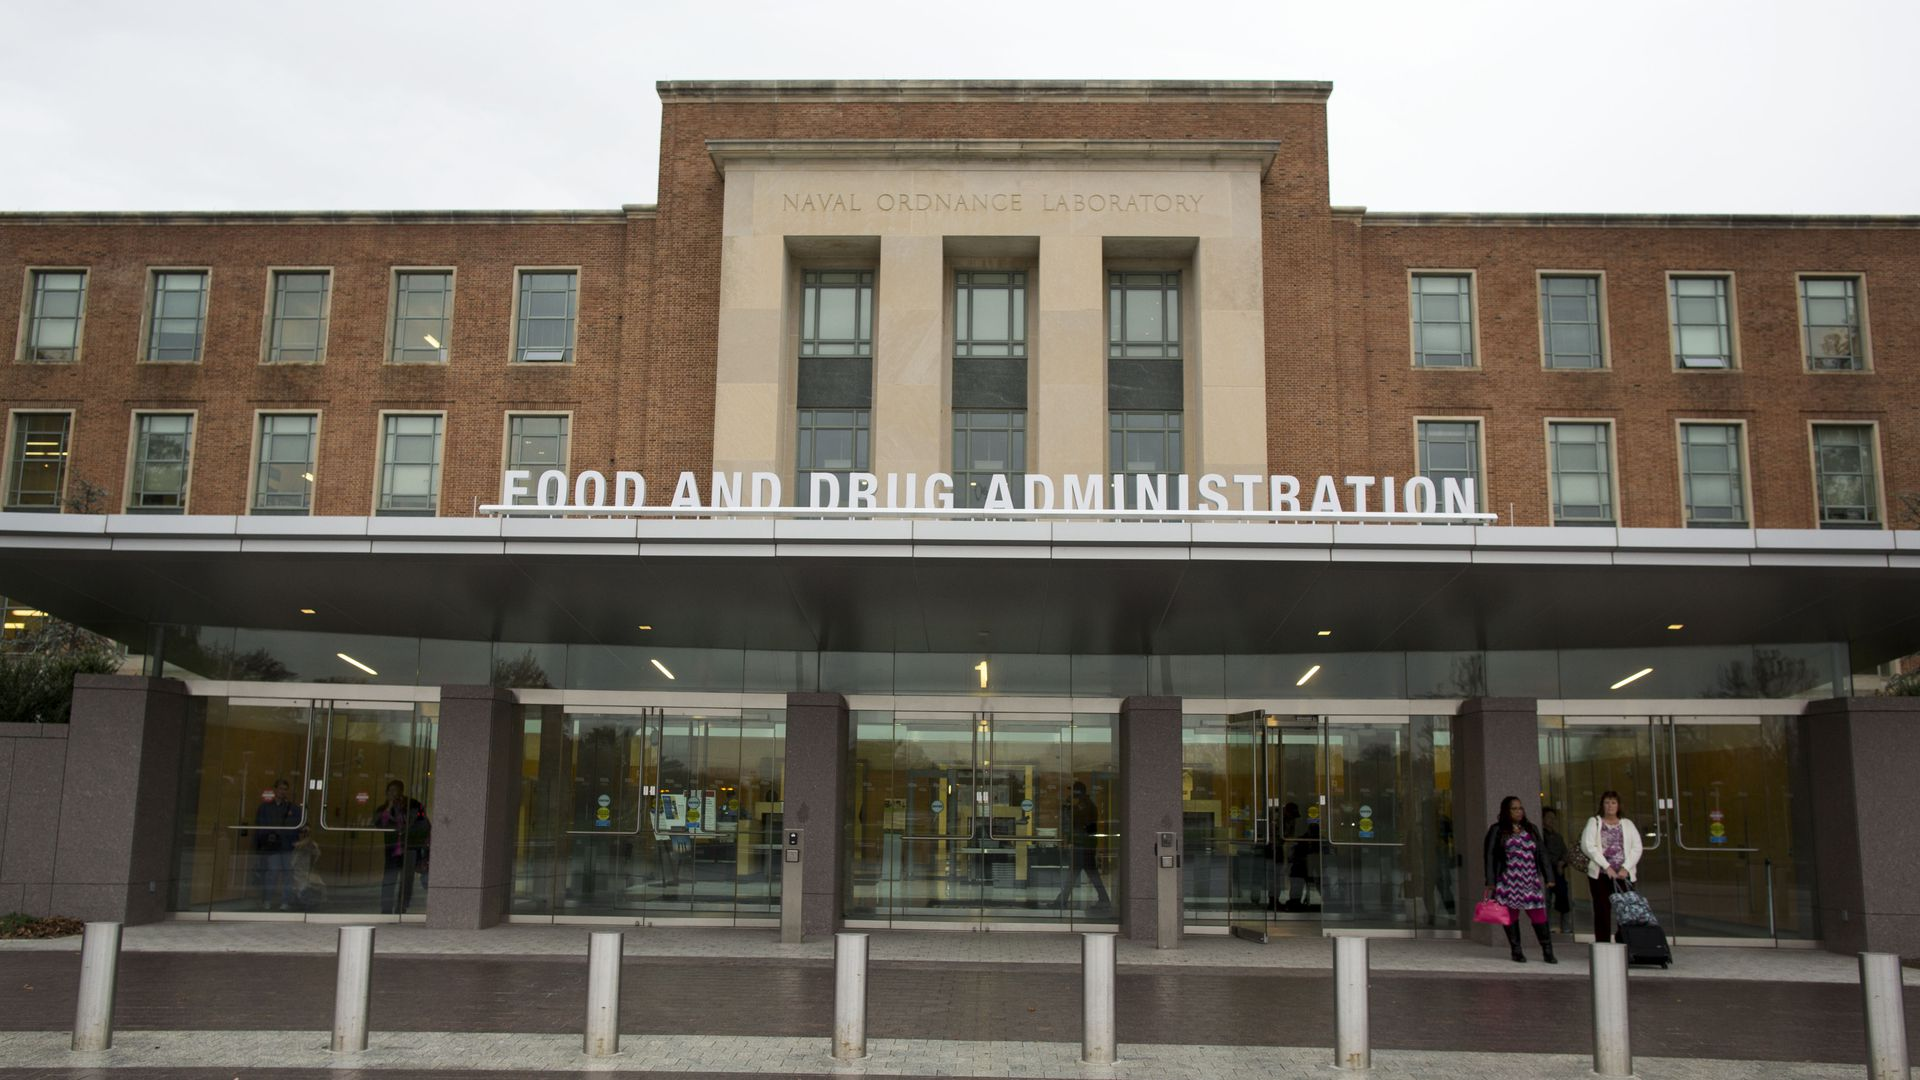 FDA headquarters building in Maryland.